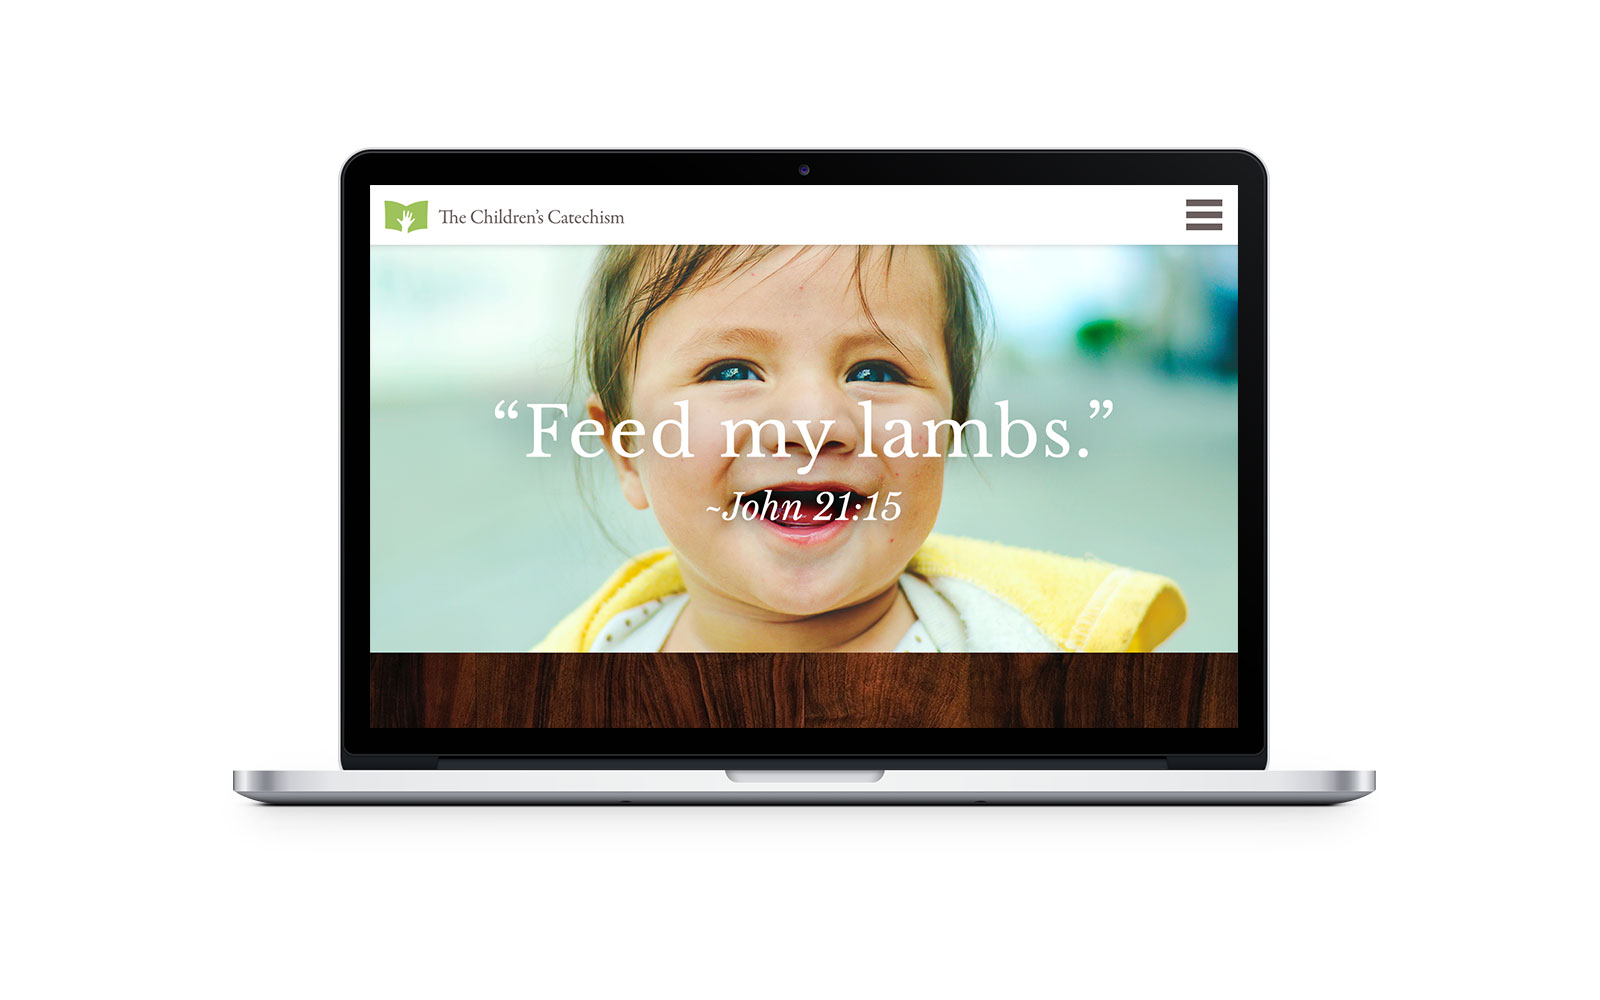 Children's-Catechims-Branding-5 website